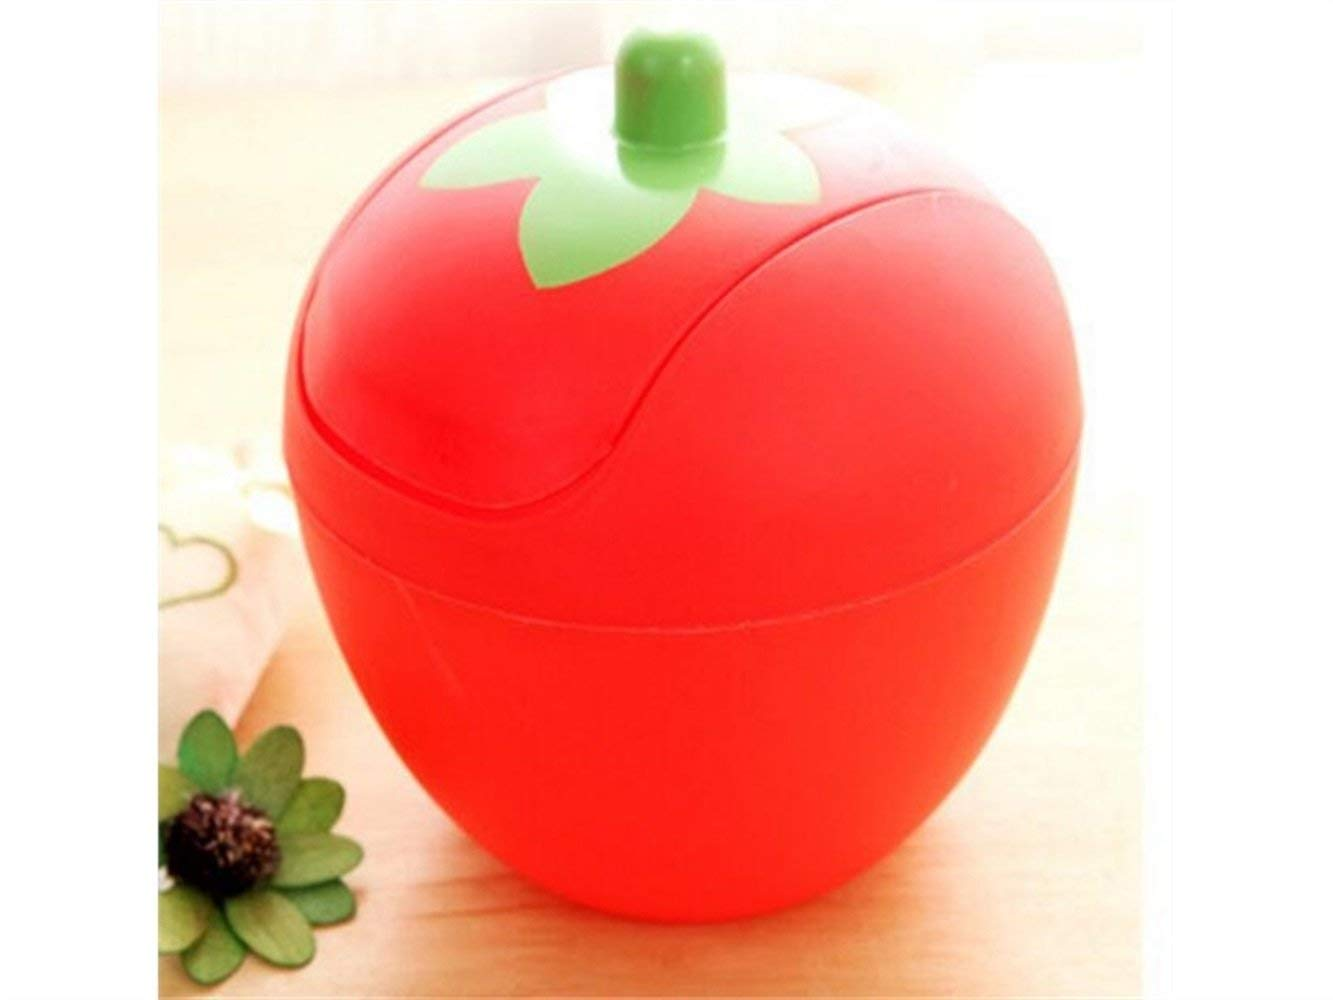 Yuchoi Perfectly Shaped Creative Mini Desk Strawberry Table Waste Bin House Trash Can (Red)